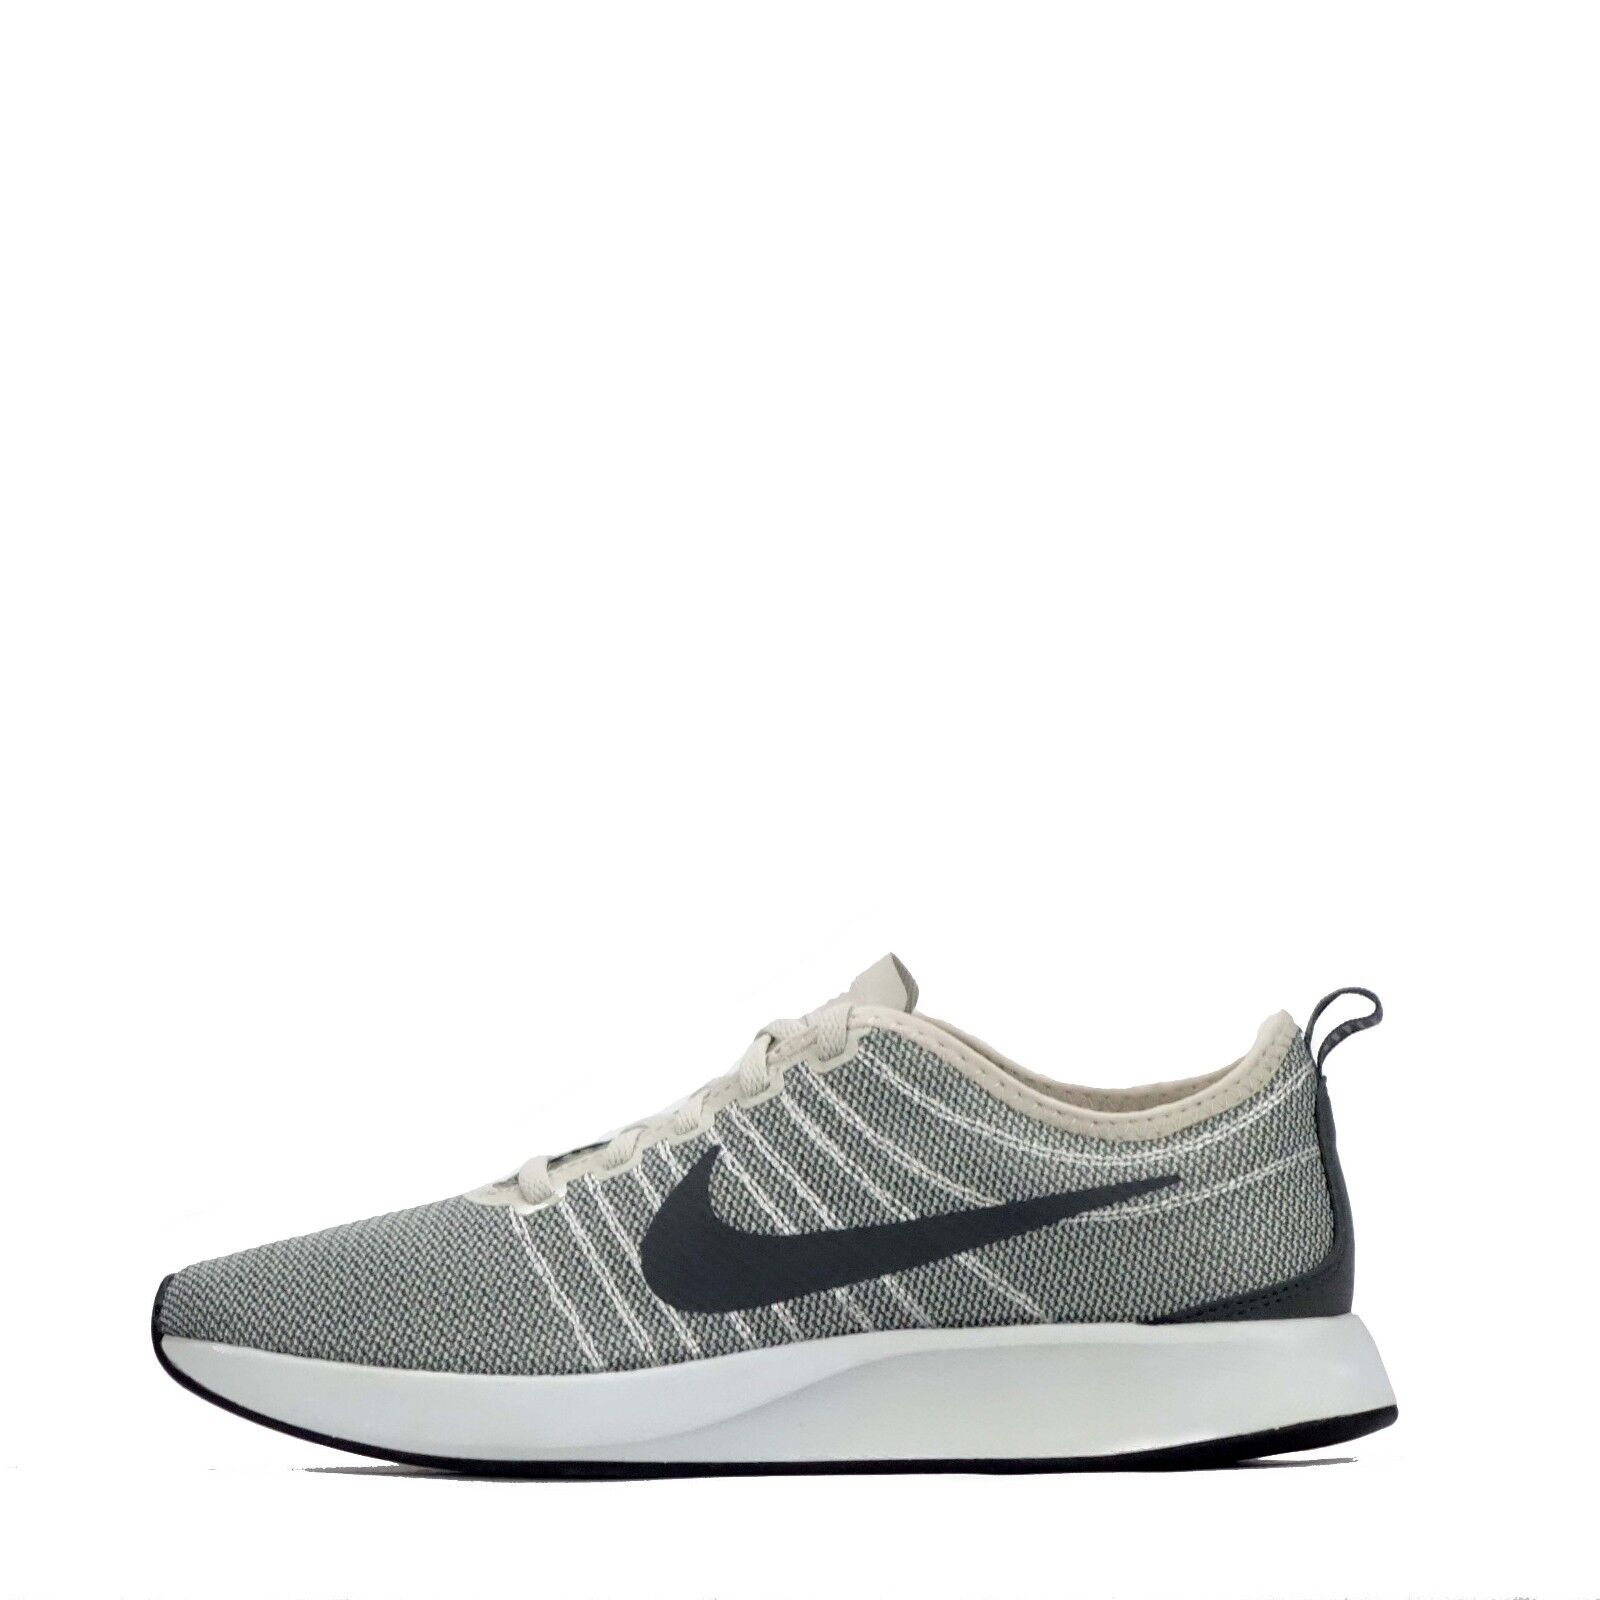 Nike Dualtone Racer Casual Lace up femmes Ladies Chaussures in Light Bone72